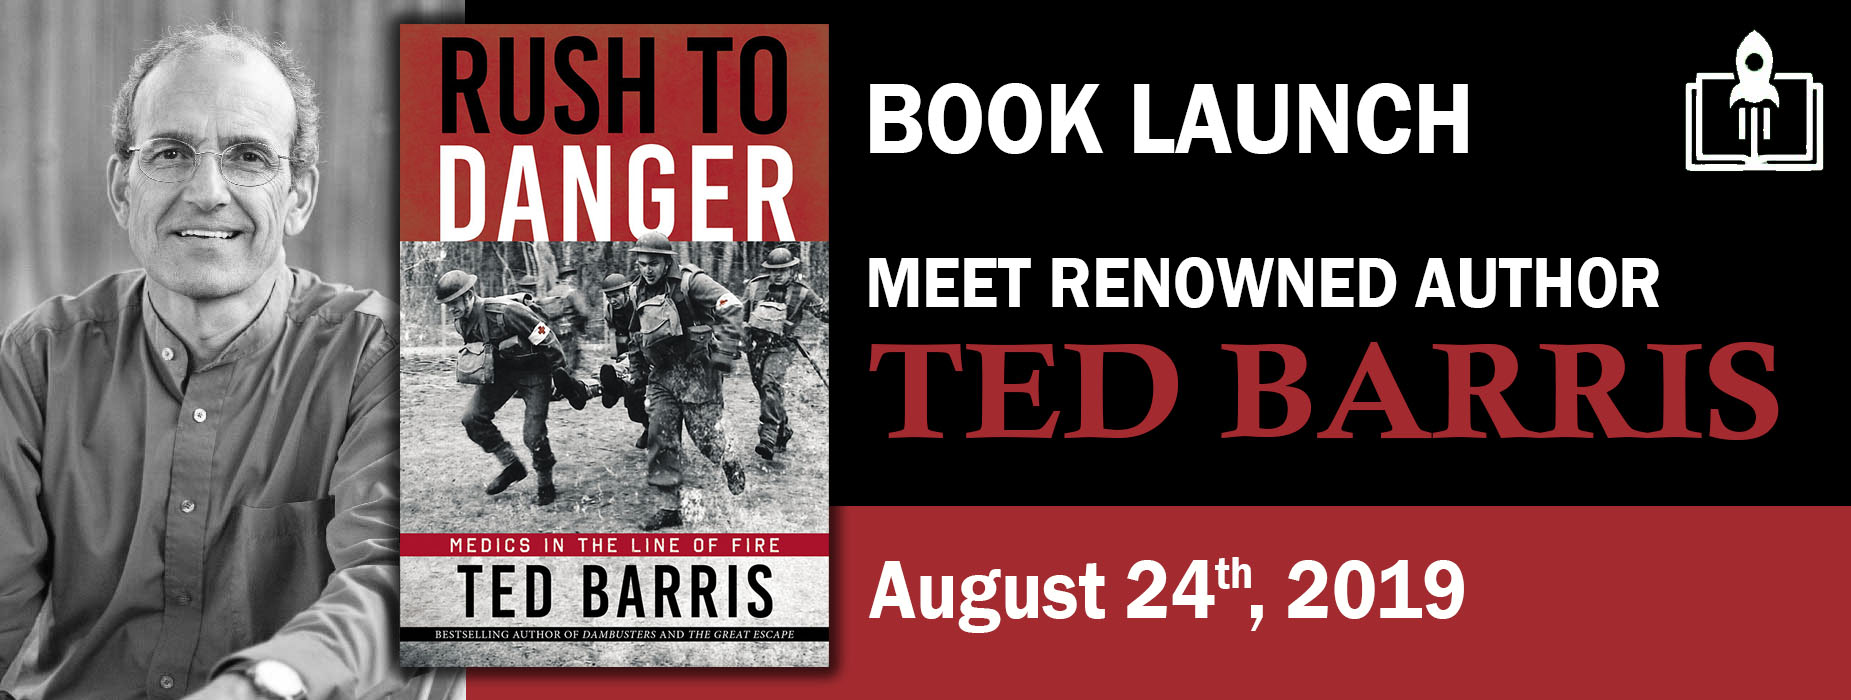 """Banner Image for the """"Rush To Danger"""" Book Launch event"""